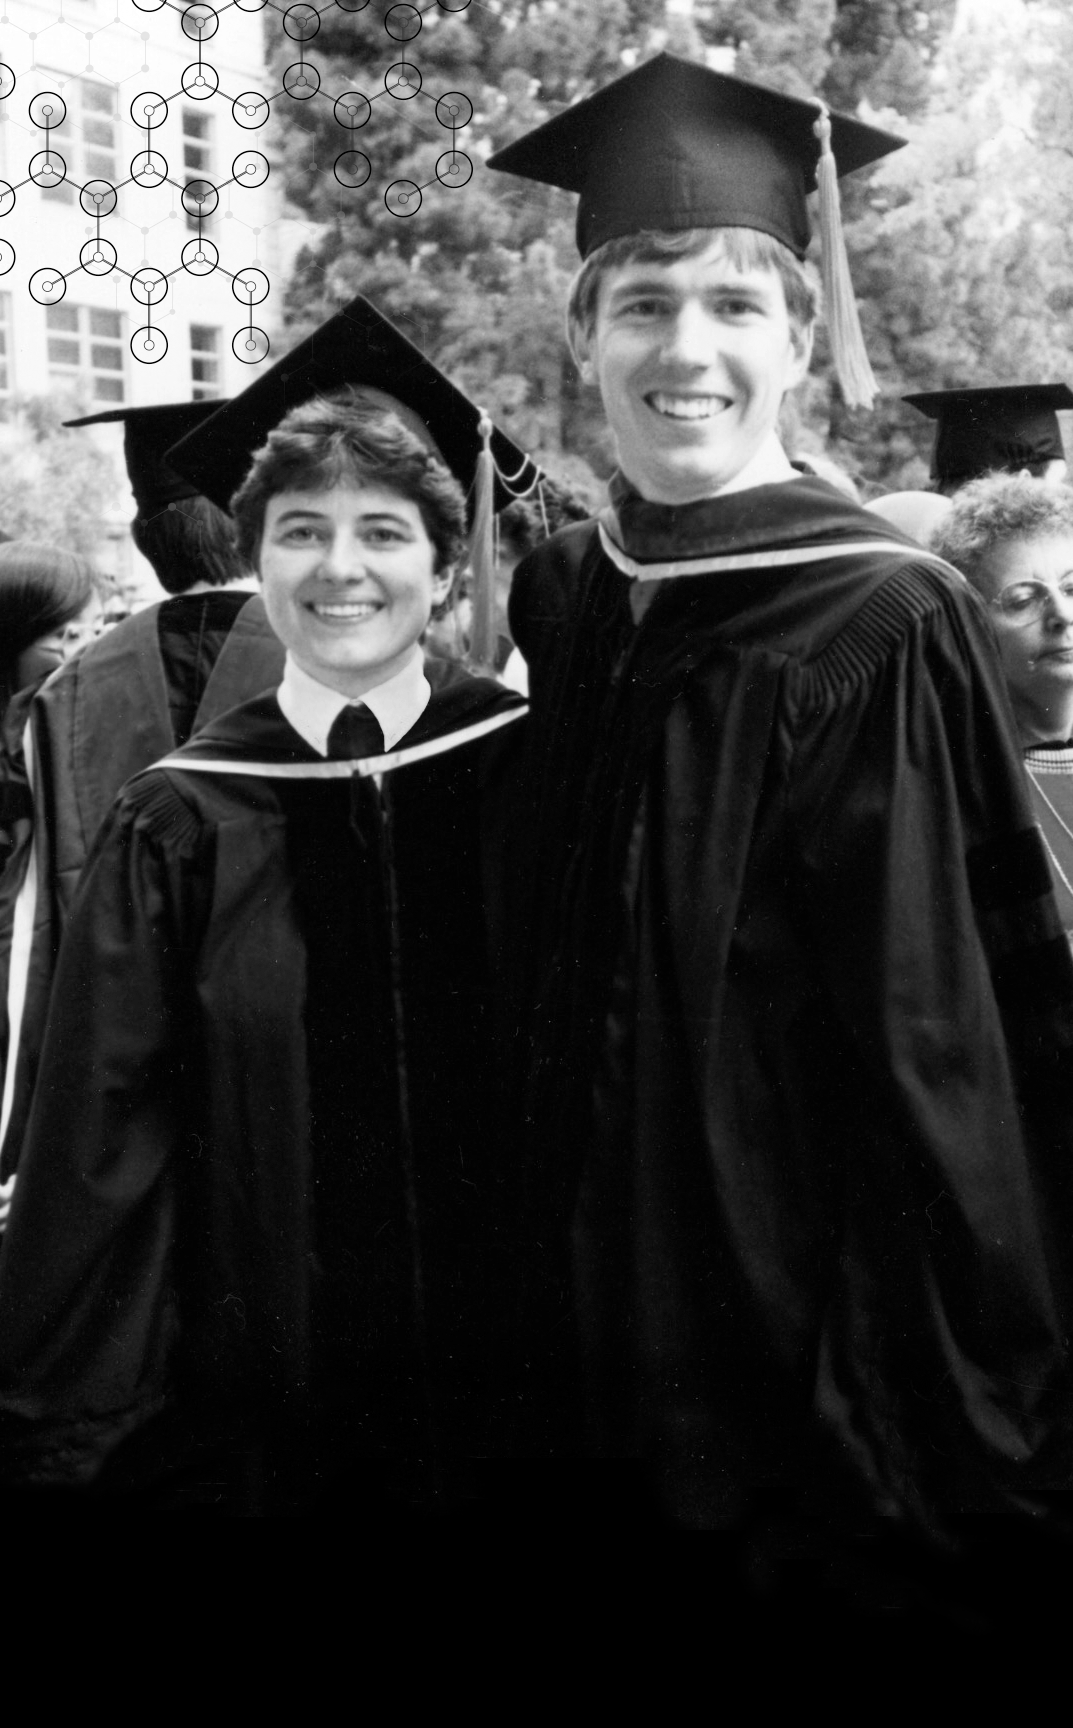 Photo of Ann and Joe wearing their graduation robes and caps.